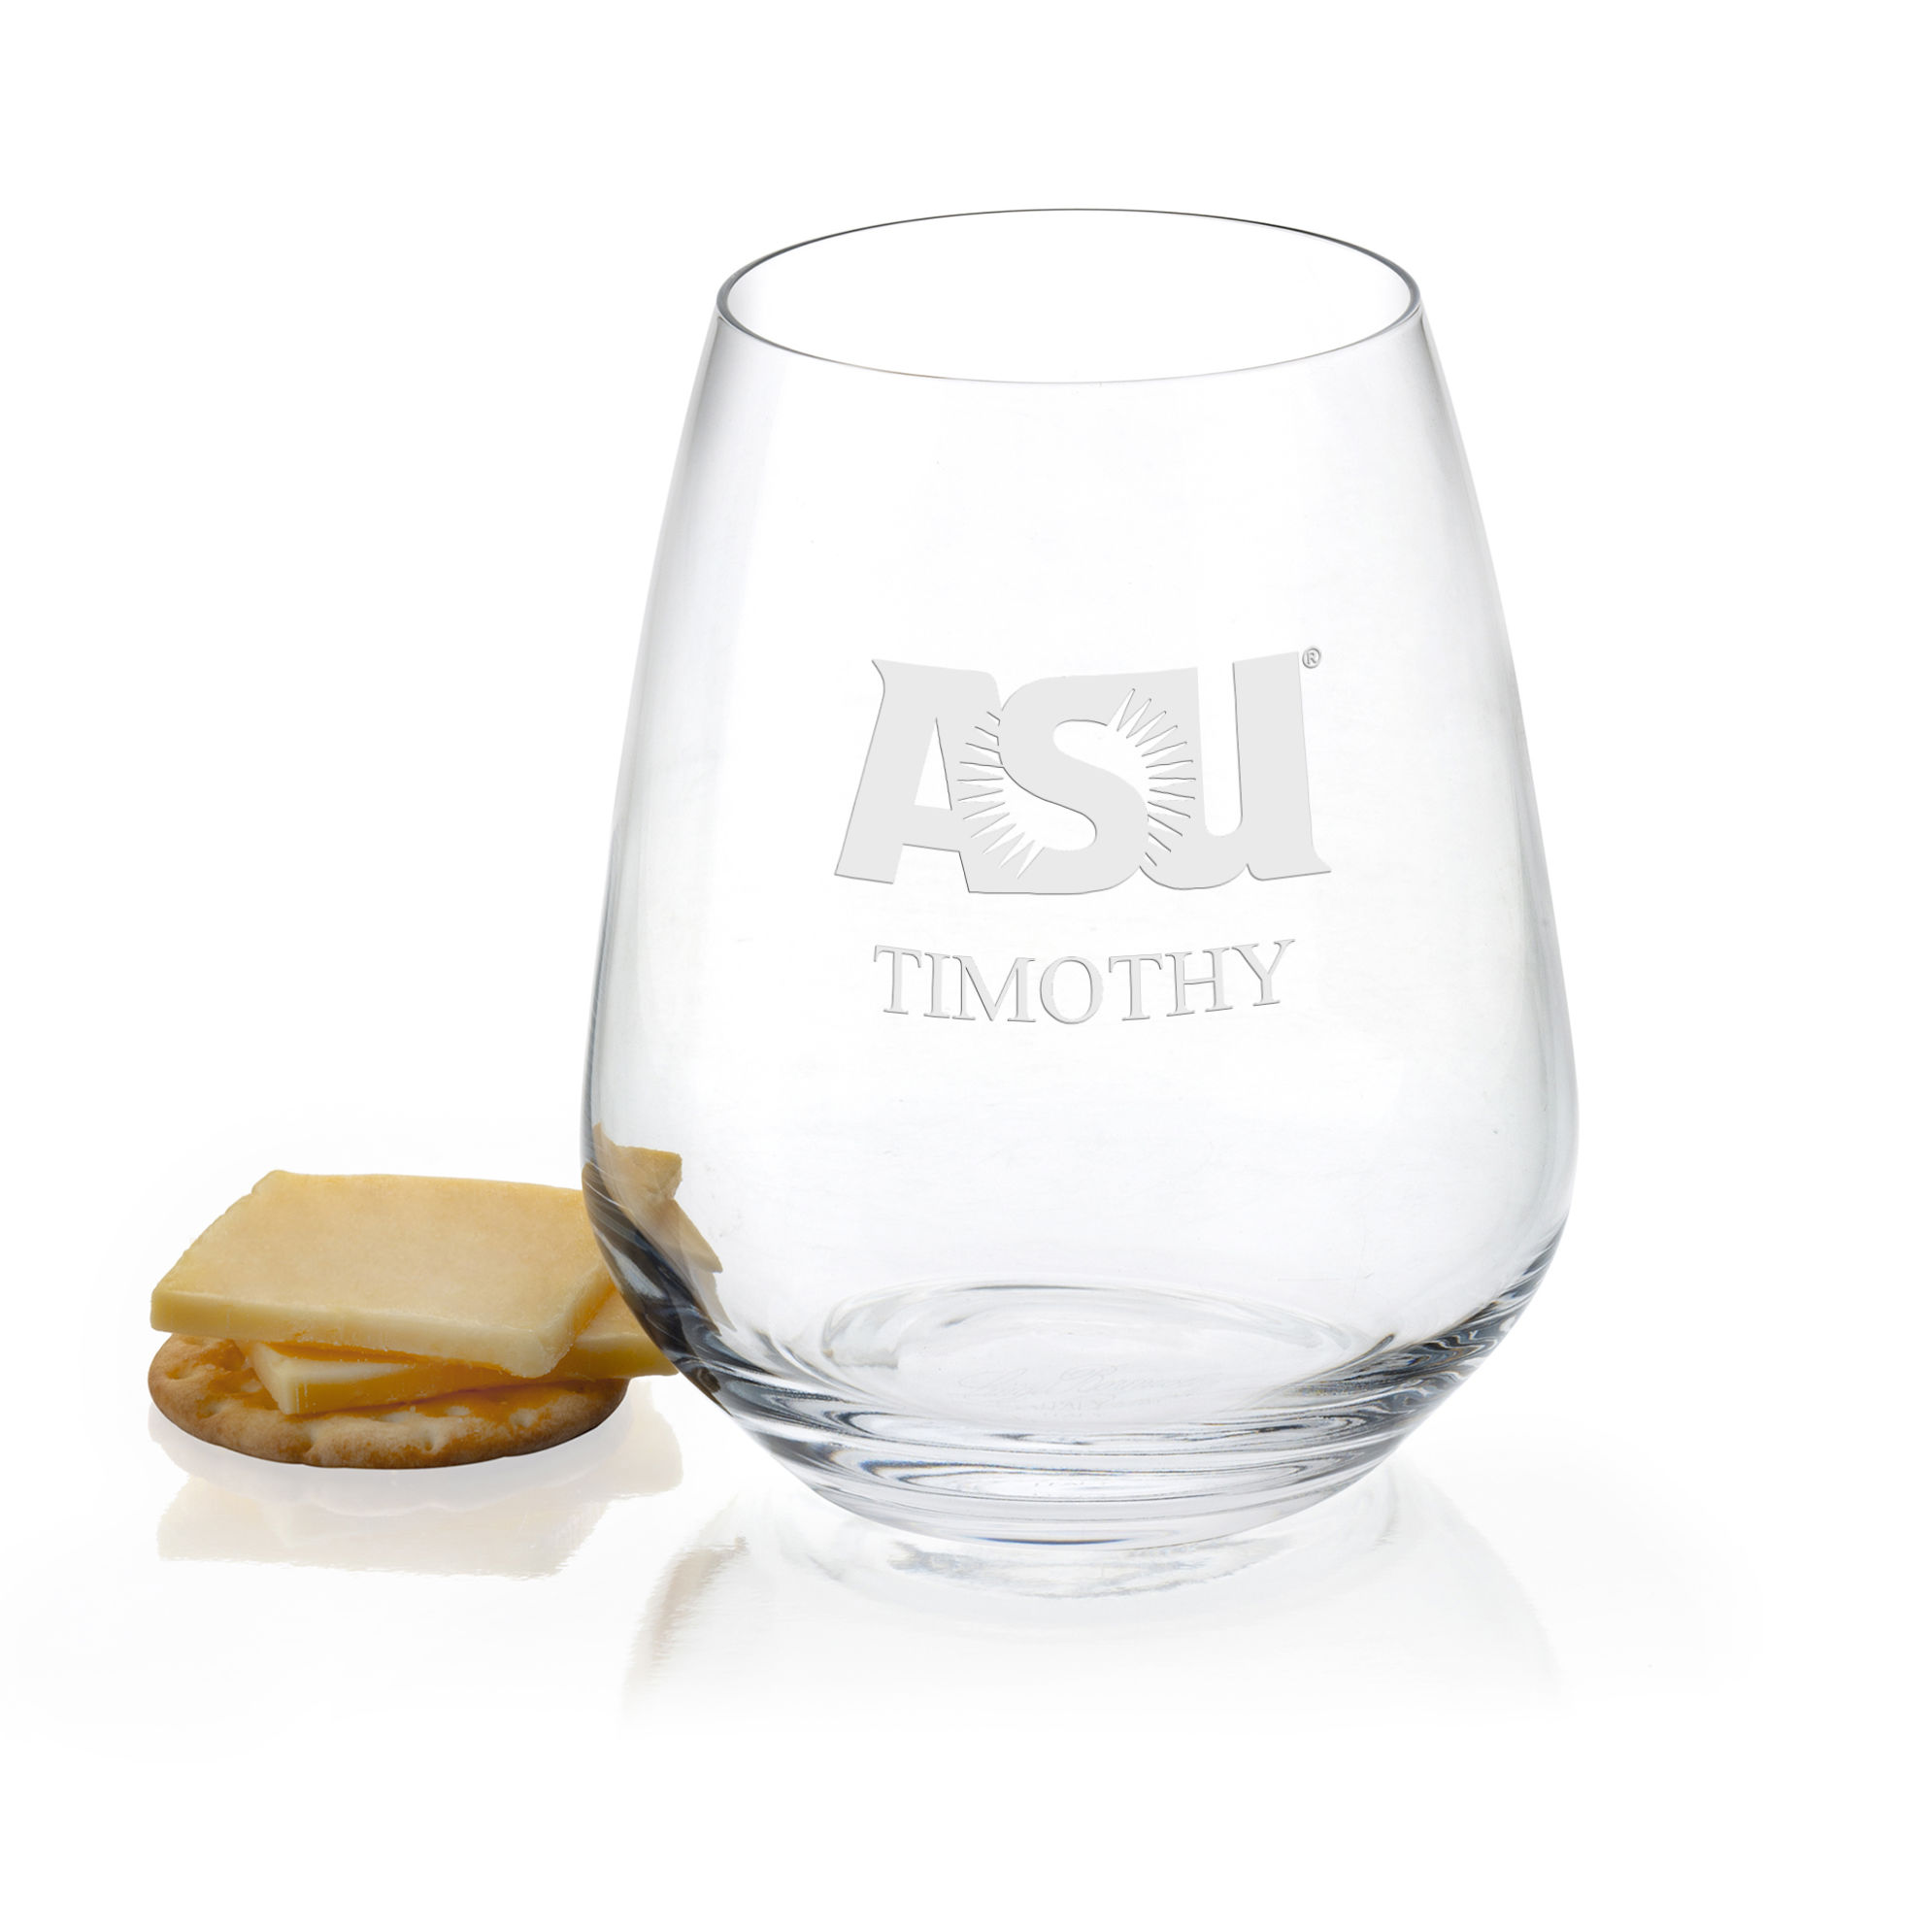 Arizona State Stemless Wine Glasses - Set of 2